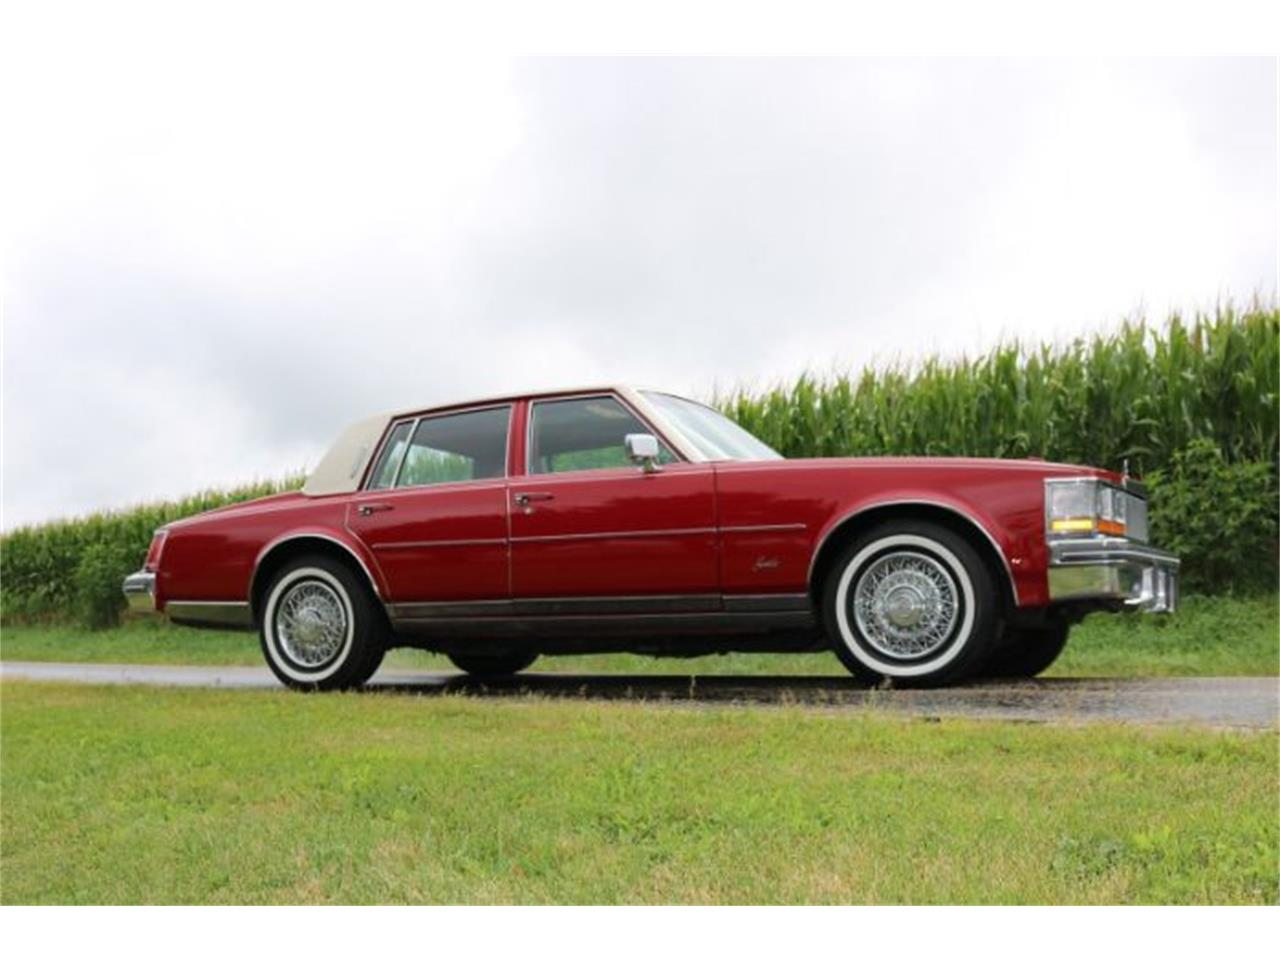 1979 Cadillac Seville for sale in Cadillac, MI – photo 24